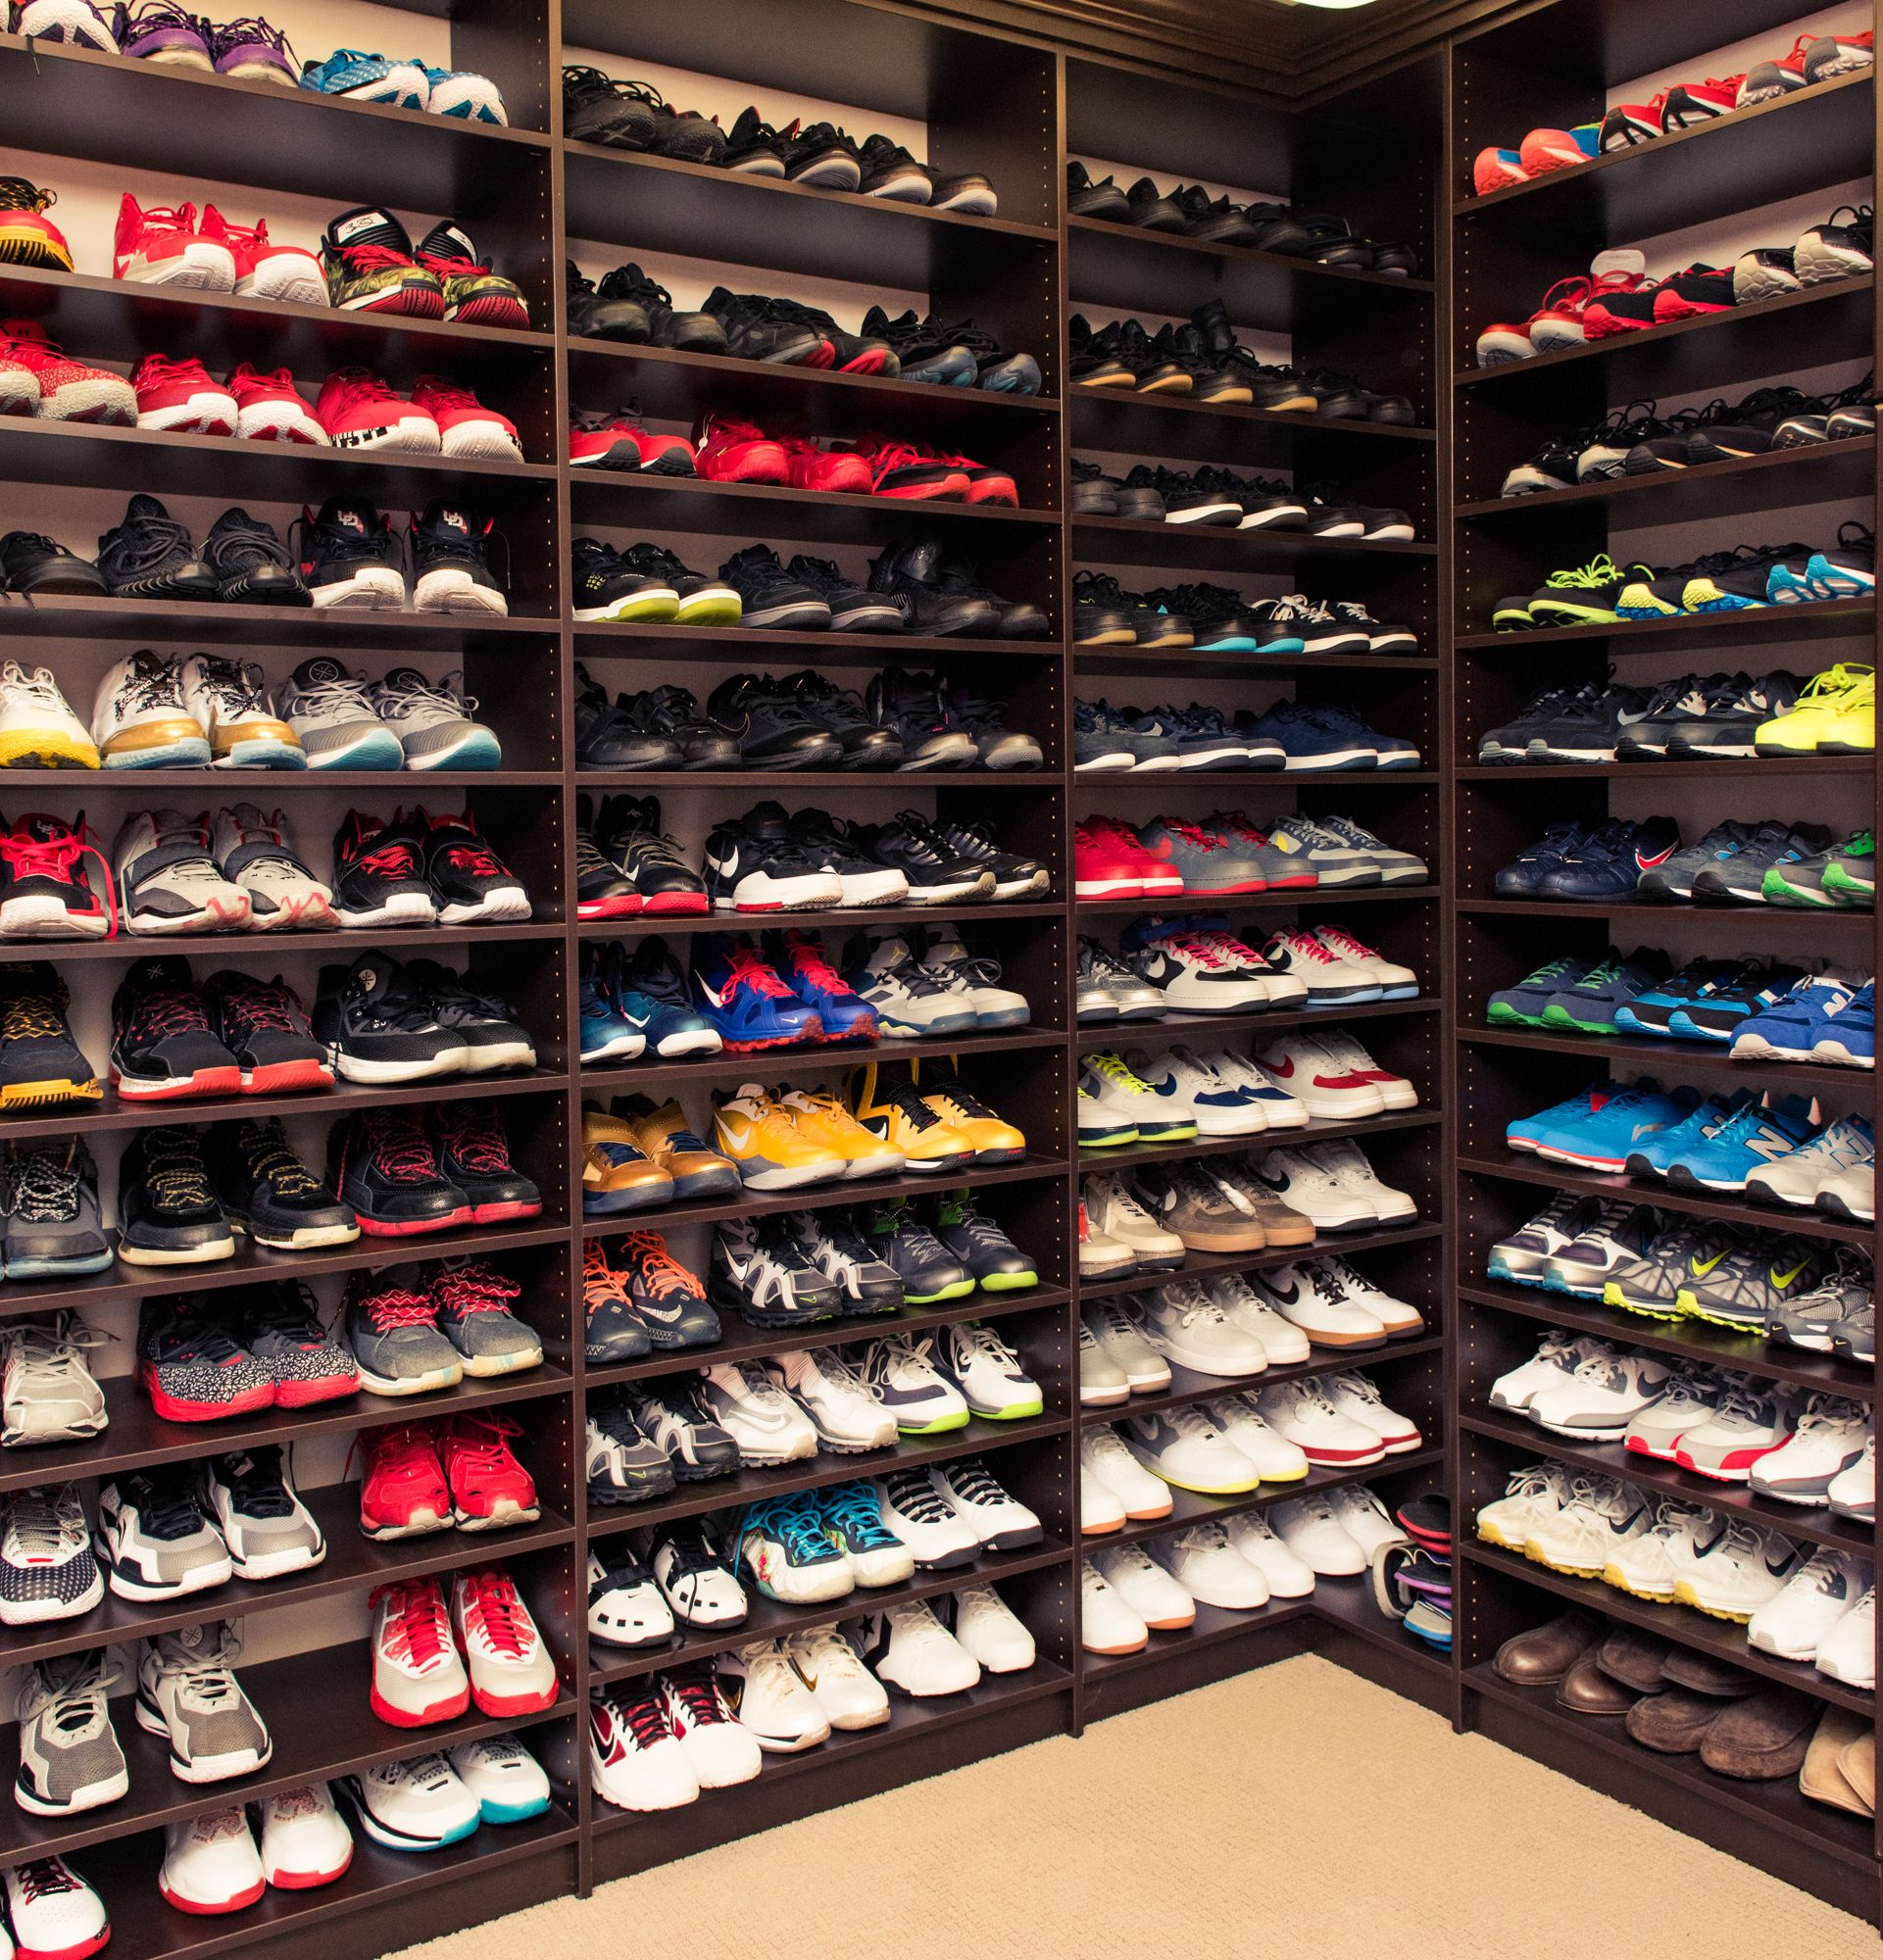 Bon There Are Shoes In All The Closets In My House And More In Storage.u201d  U2014Udonis. U201c